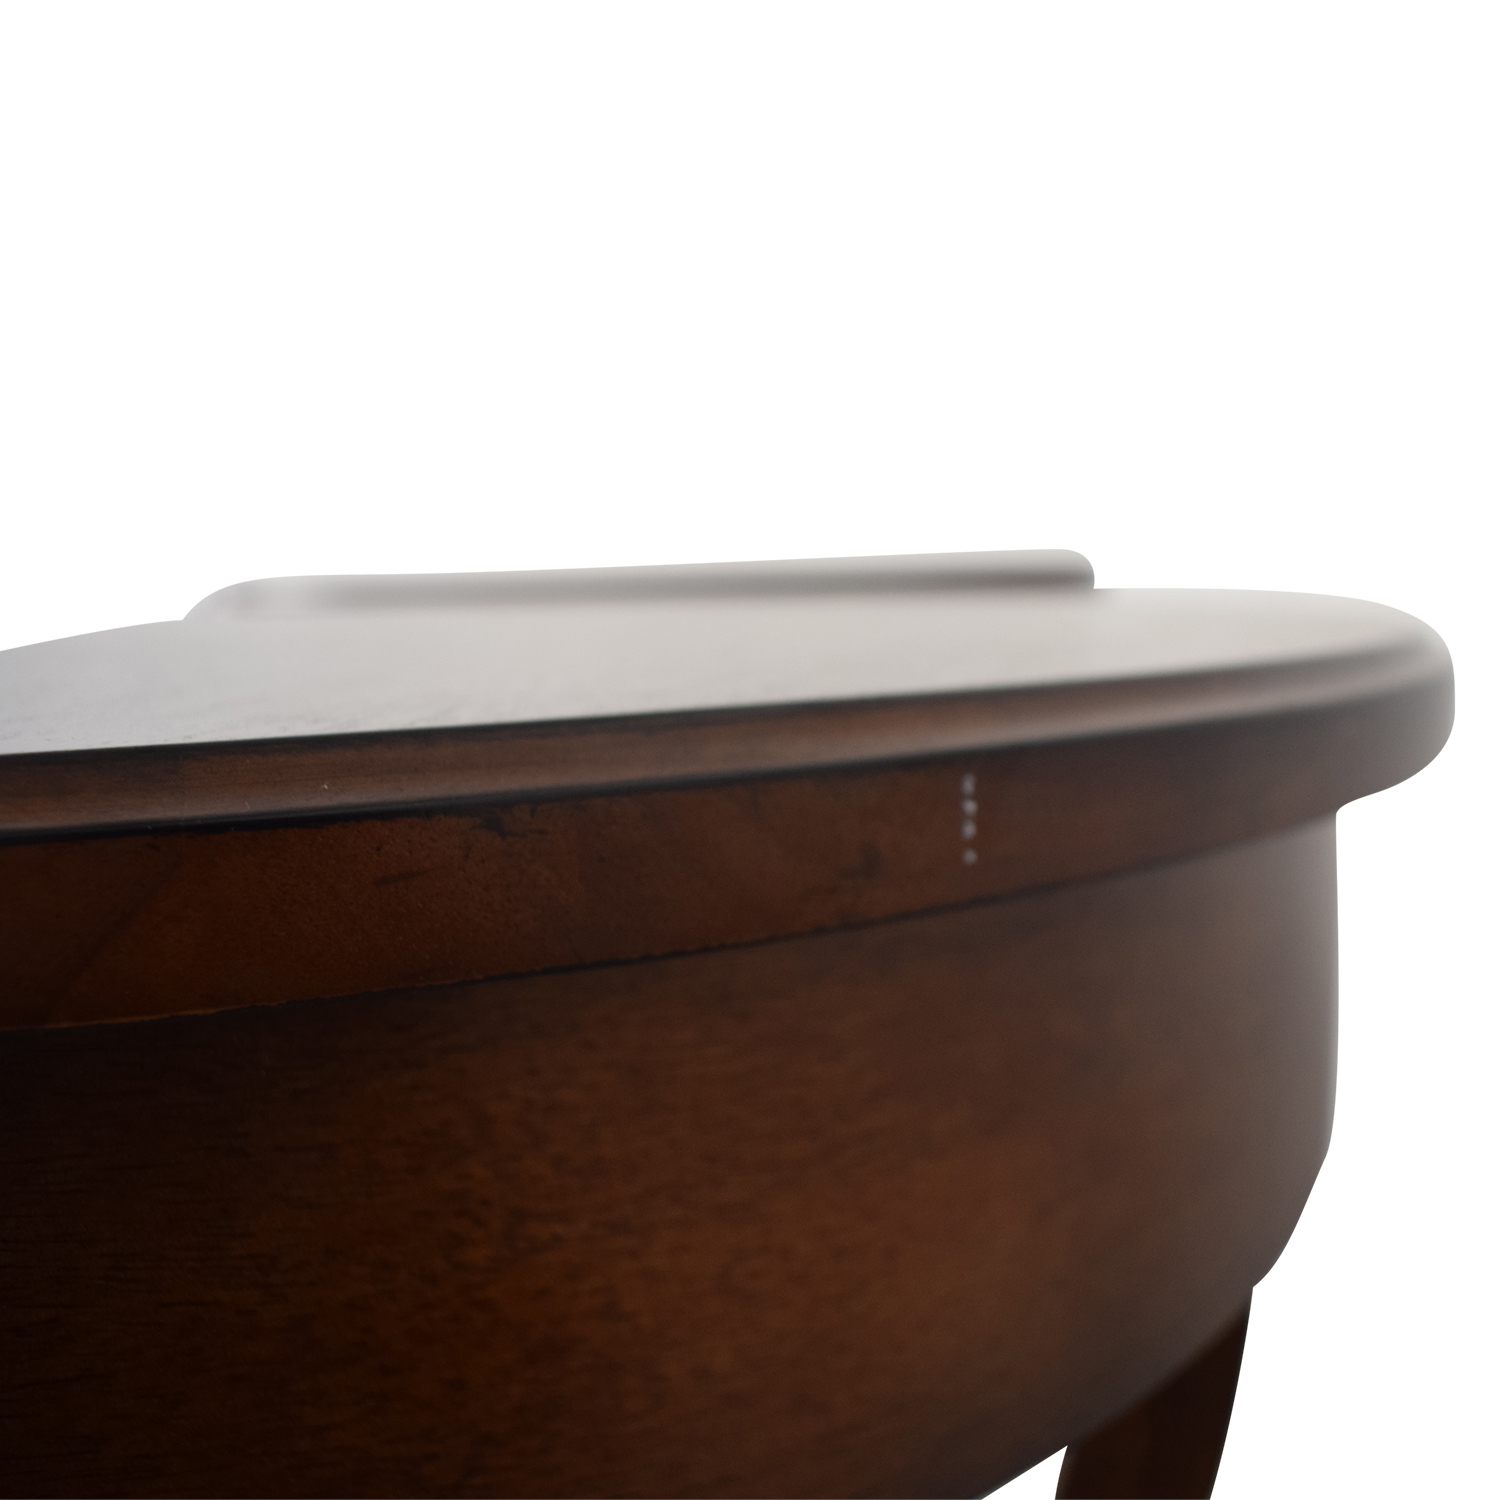 shop Pottery Barn Carrie Round Single-Drawer Pedestal End Tables Pottery Barn